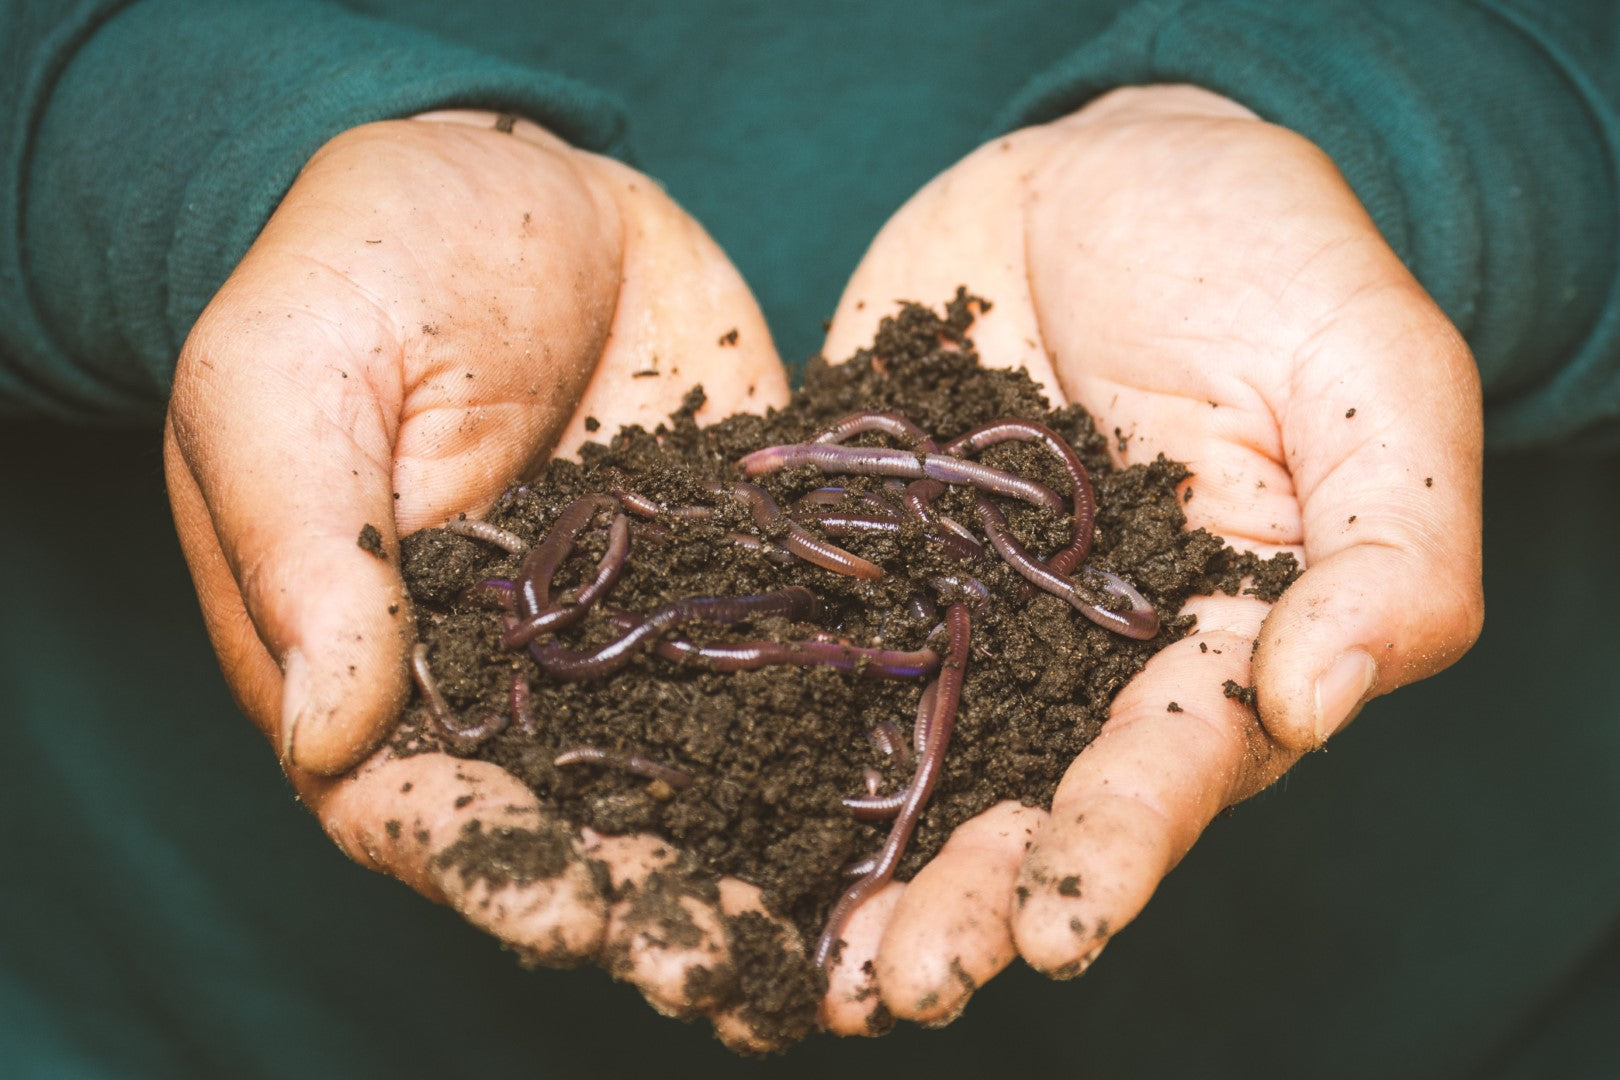 How to Get Started With Vermicomposting